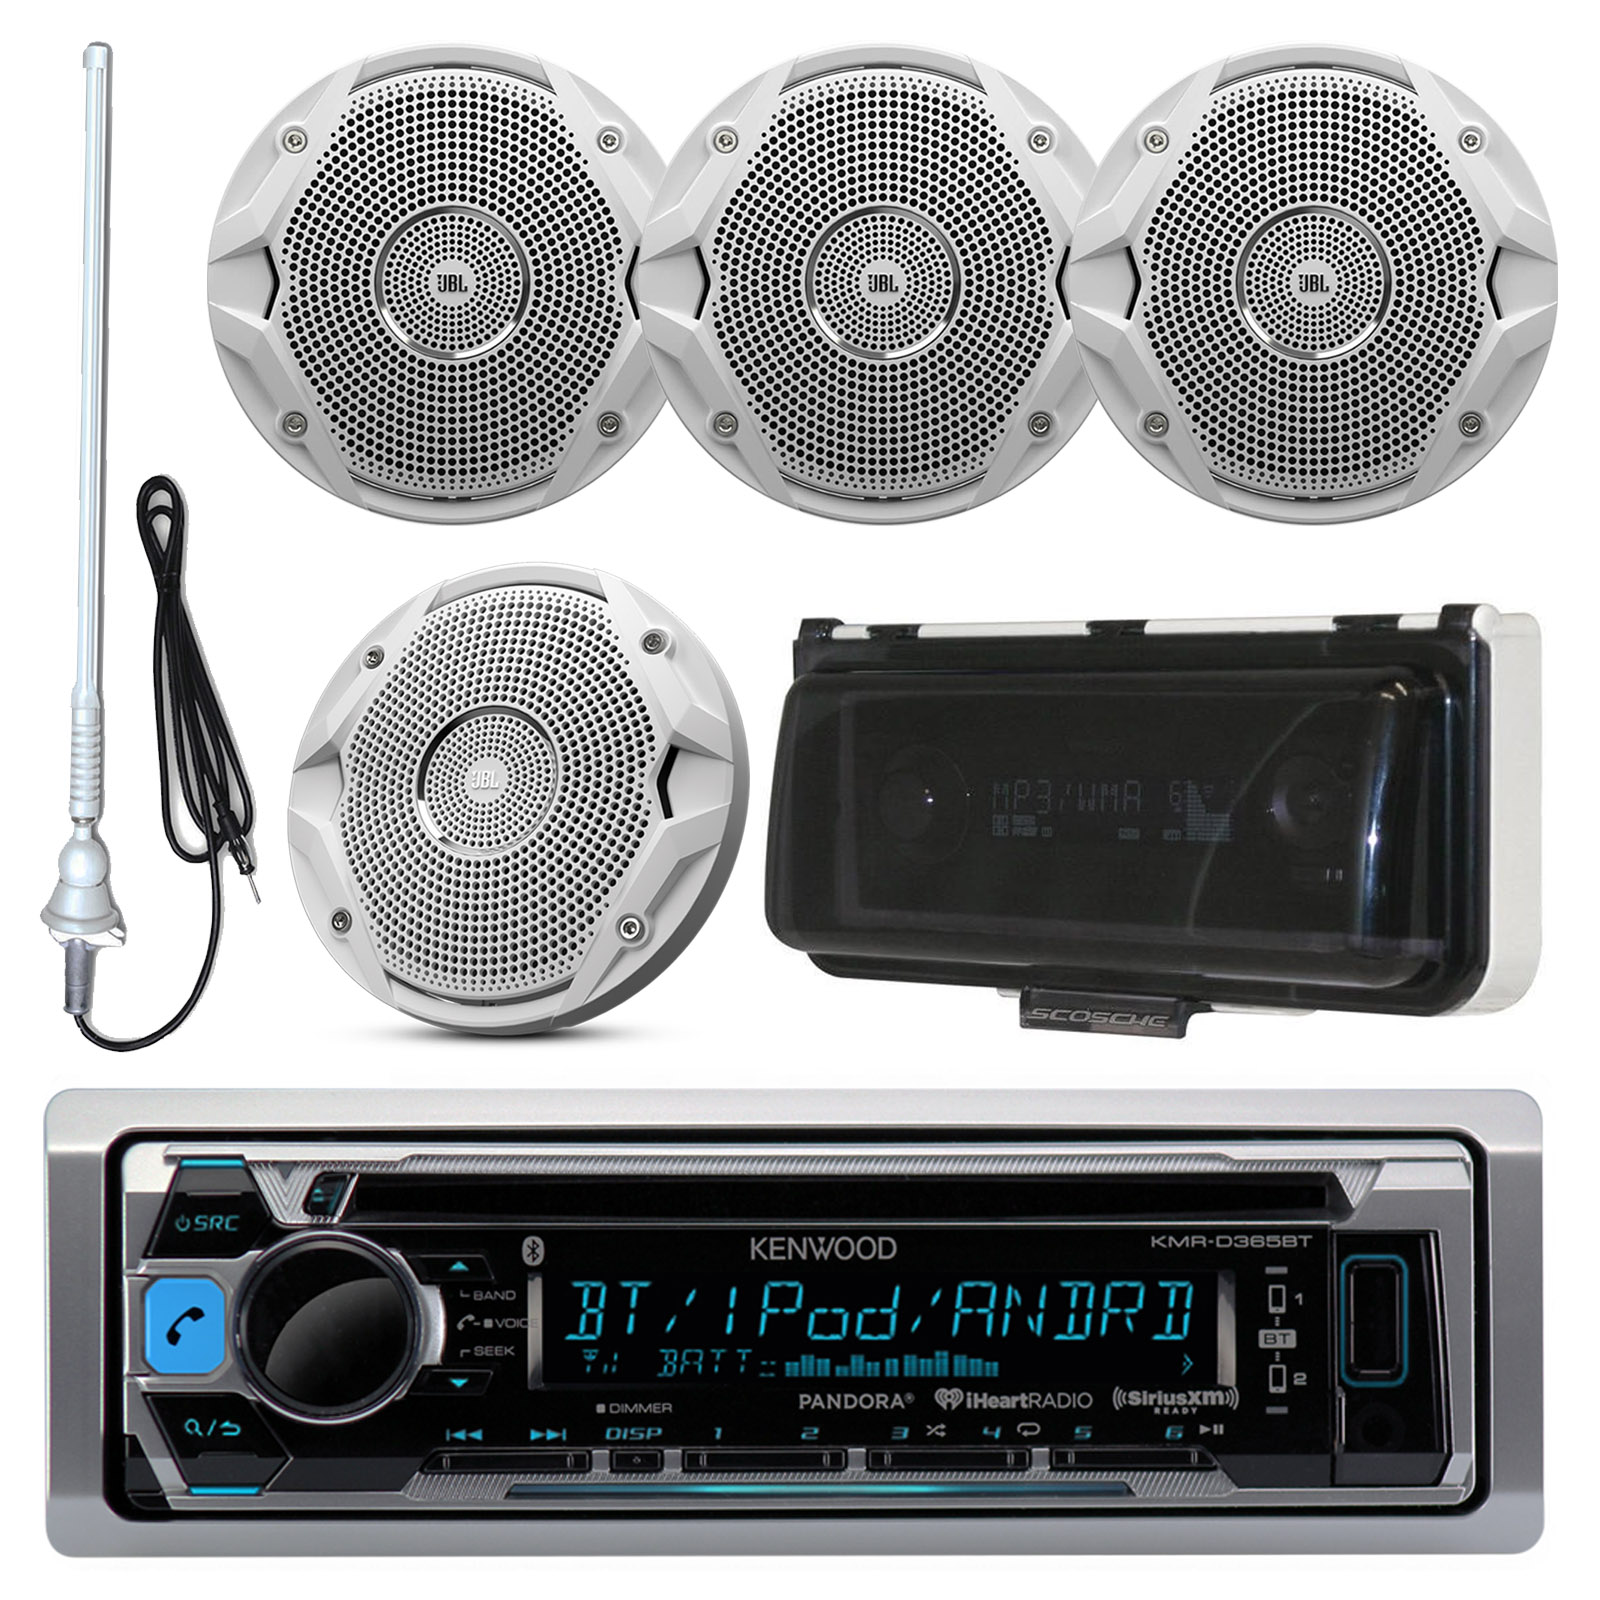 """Kenwood KMRD372BT MP3/USB/AUX Bluetooth Marine Boat Yacht Stereo Receiver CD Player Bundle Combo With 4x Infinity 612m 6.5"""" 2-Way Speakers + Scosche Waterproof Stereo Cover = Enrock 22"""" Radio Antenna"""